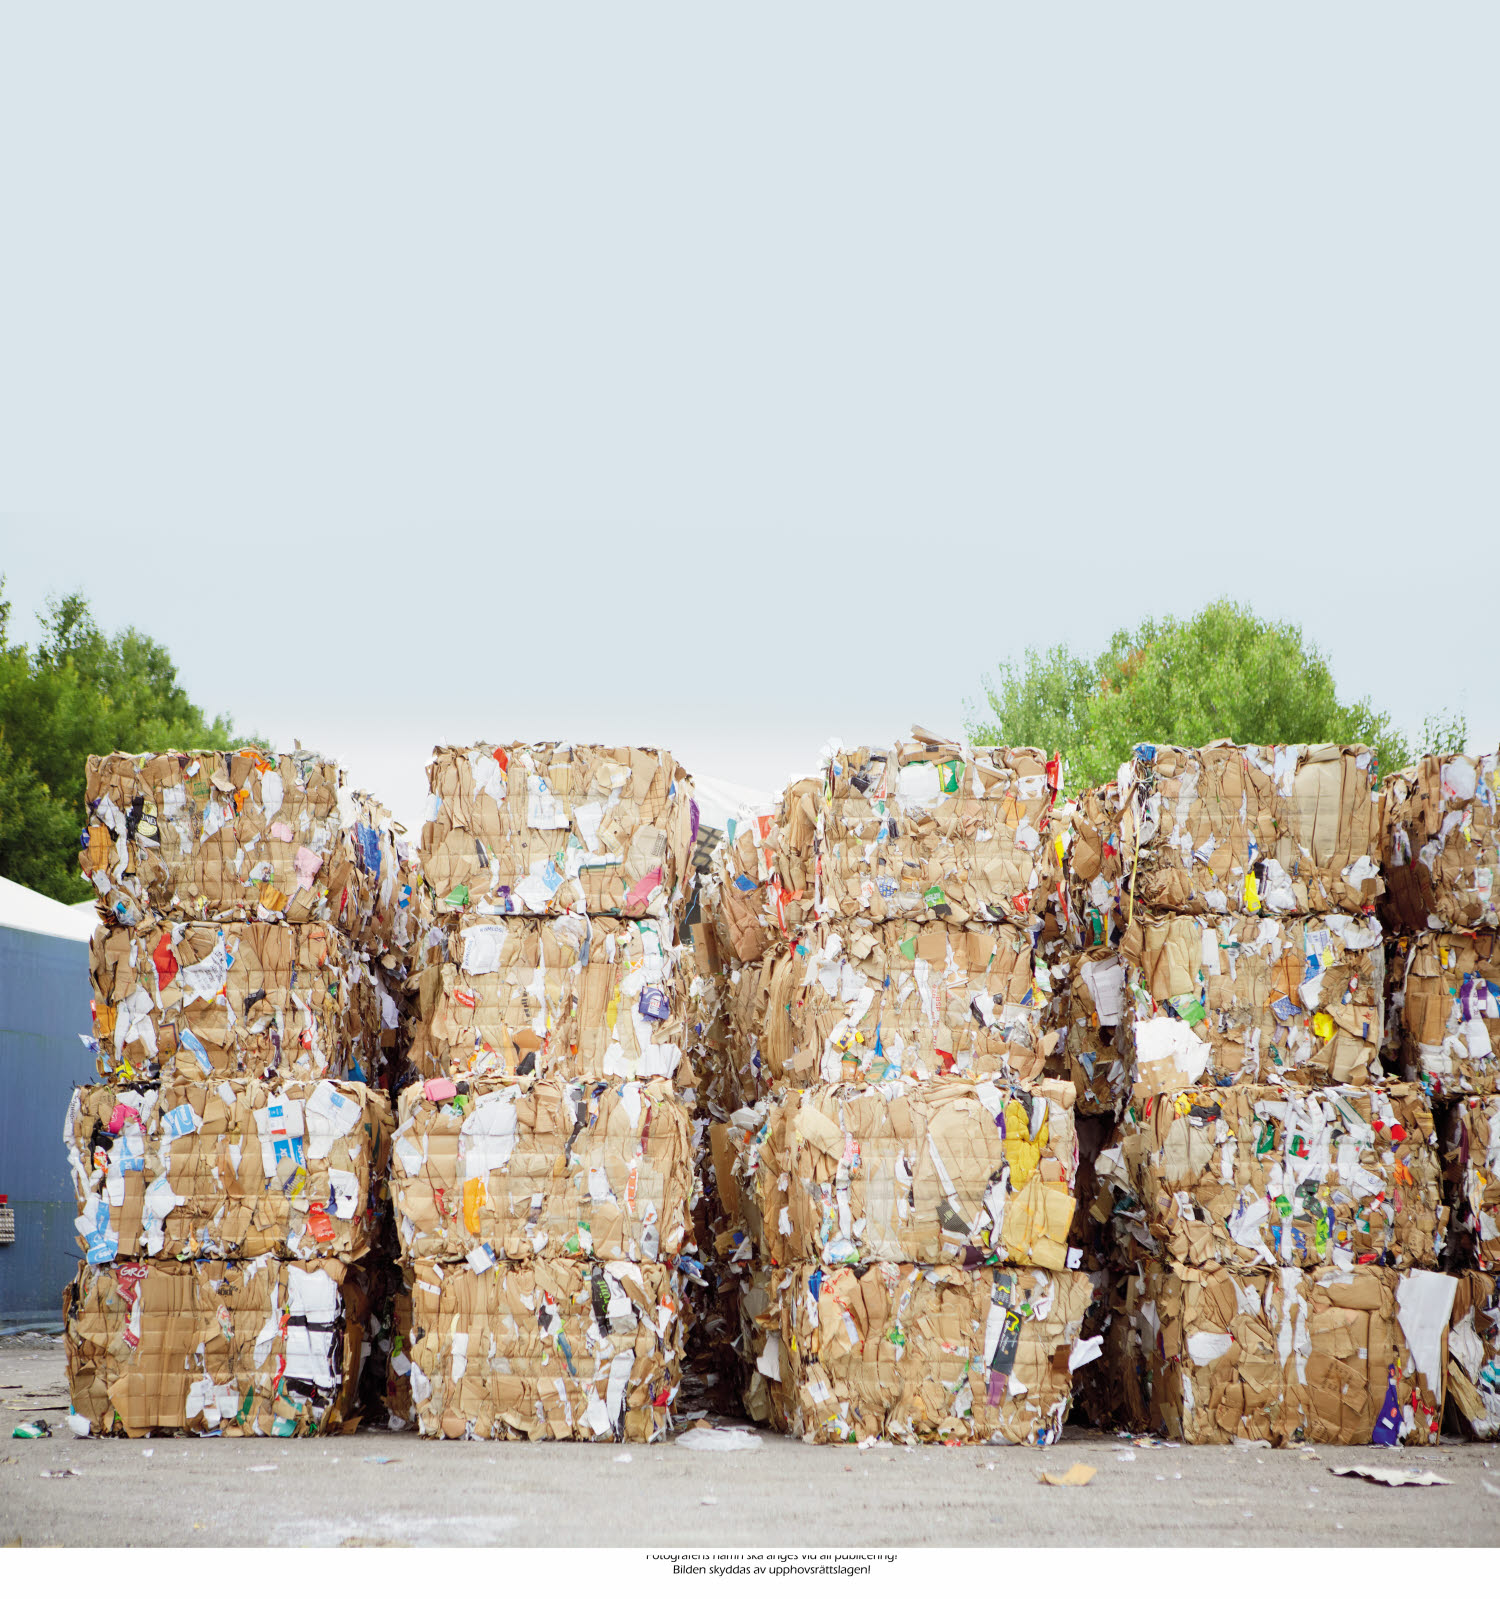 Piles of recycled garbage